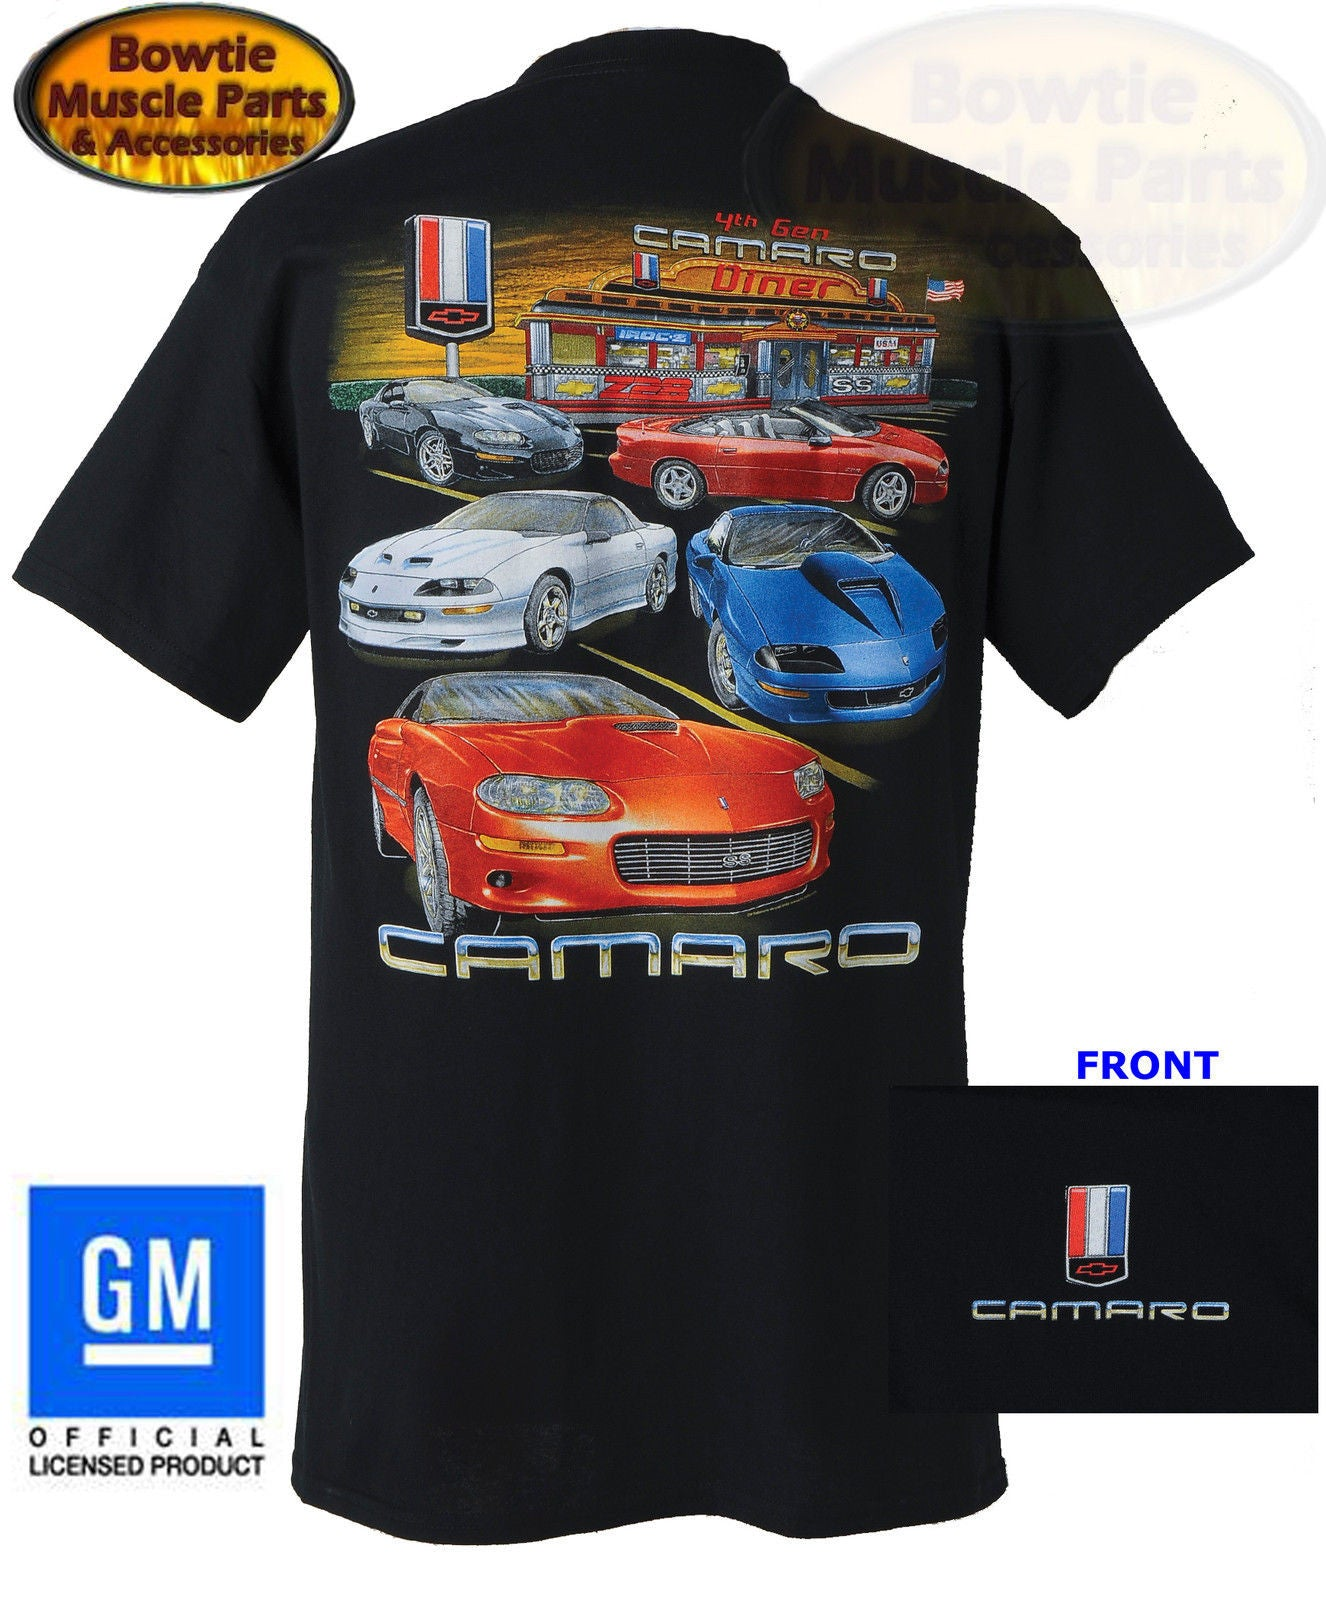 4th GEN (1993-2002) CAMARO T-SHIRT